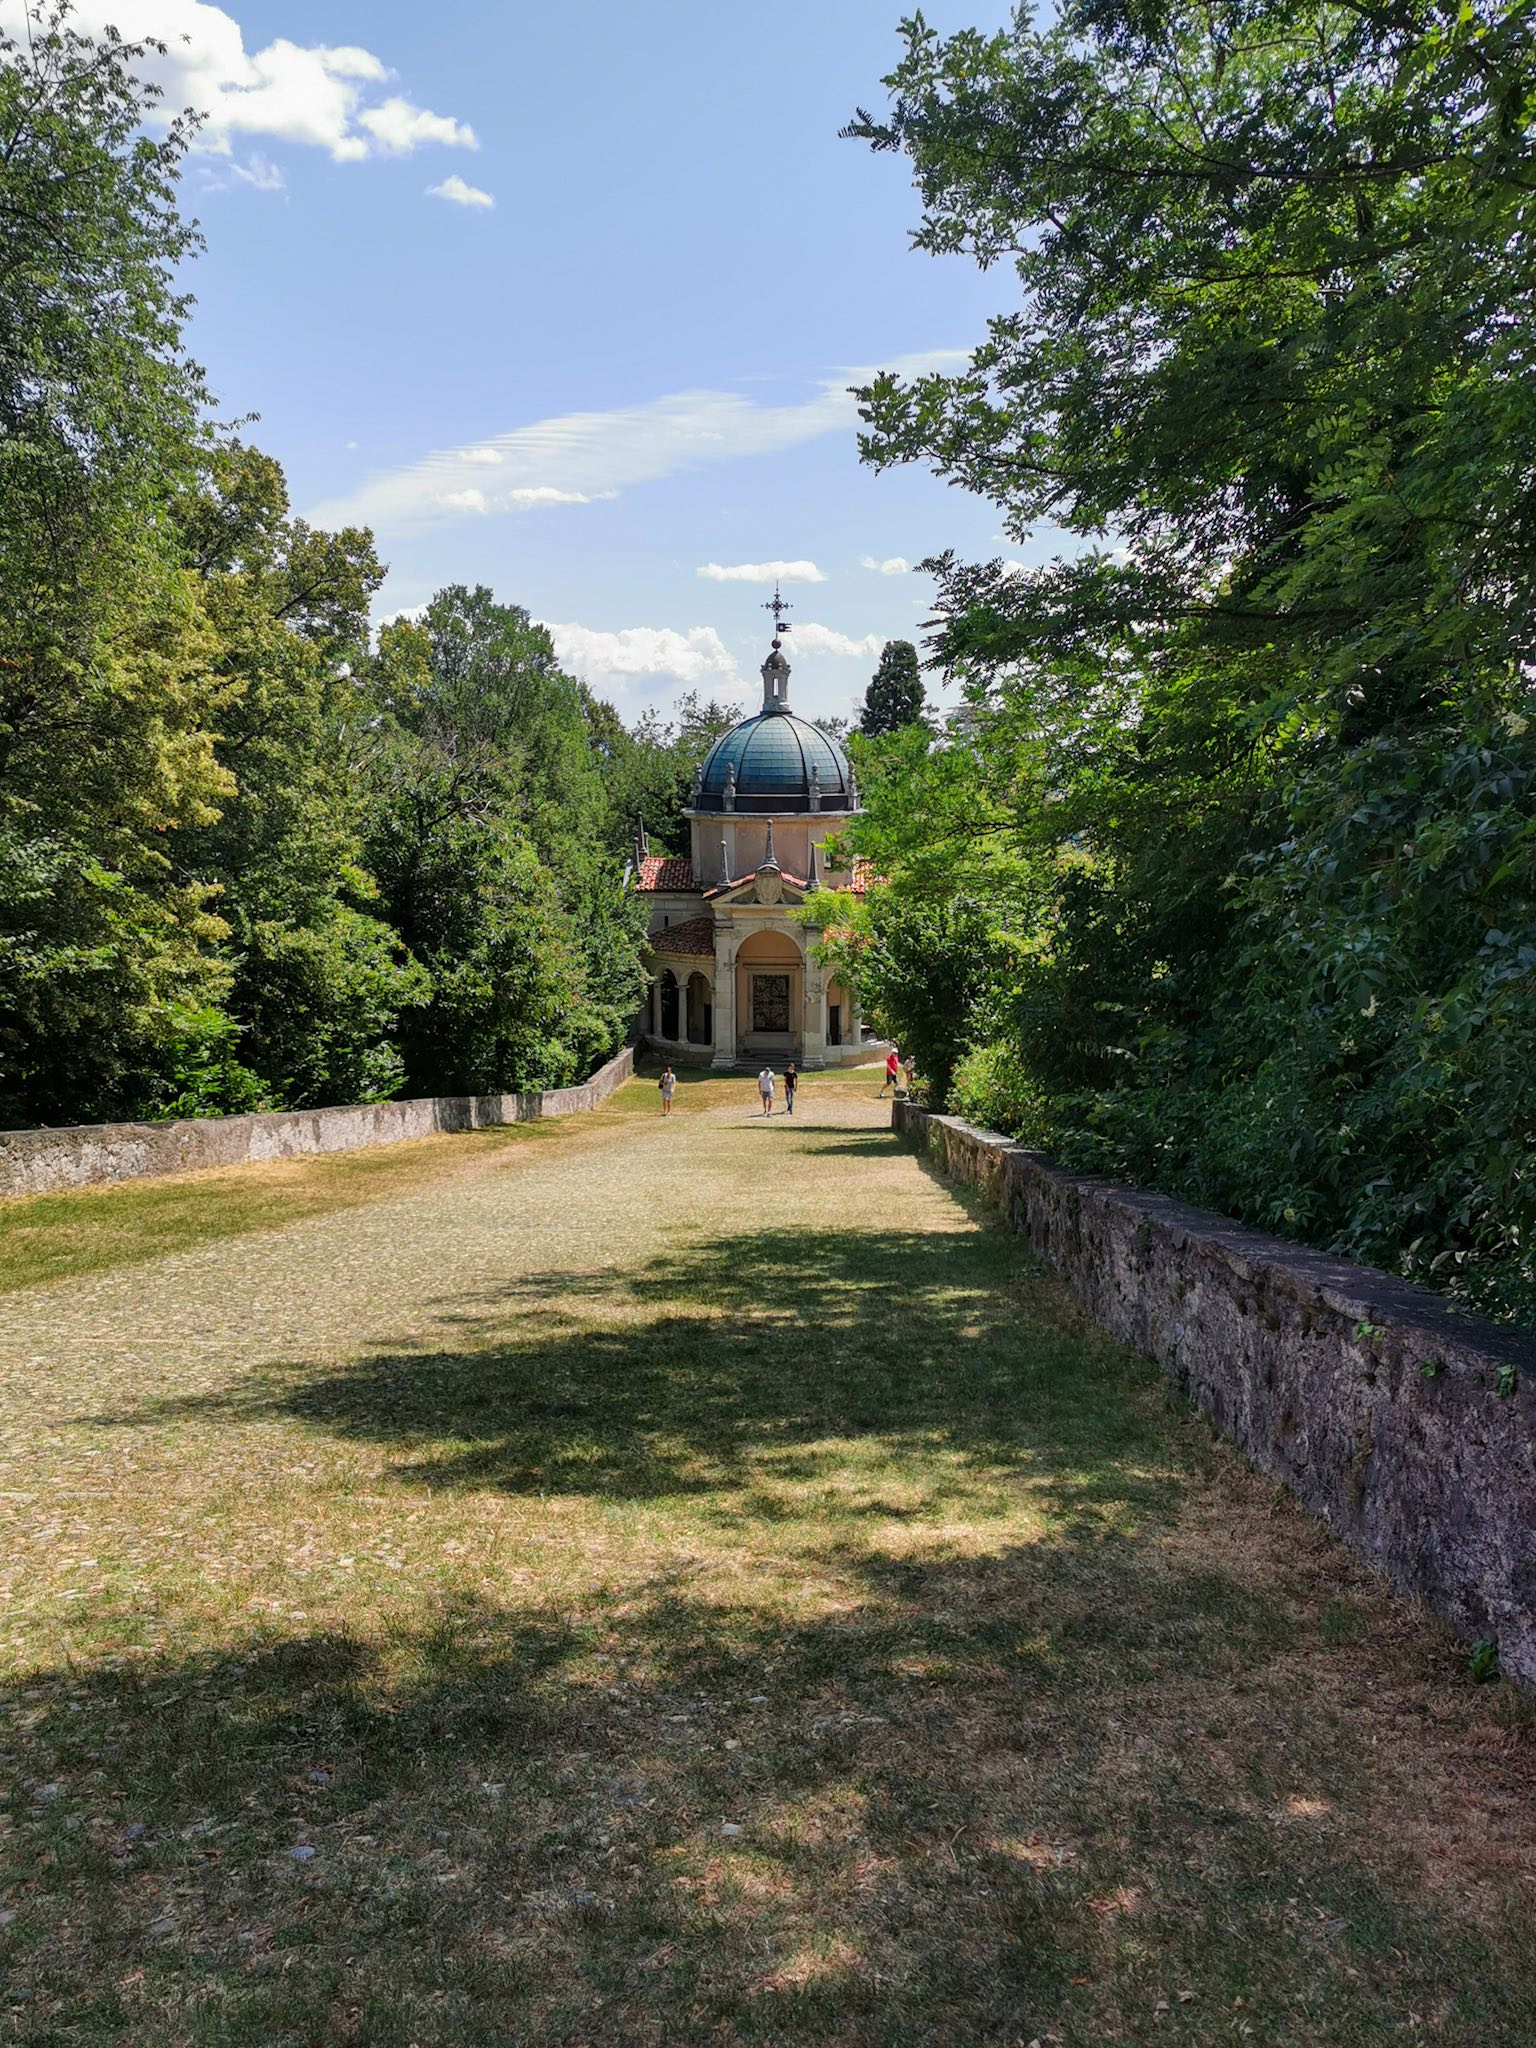 The Sacro Monte of Varese